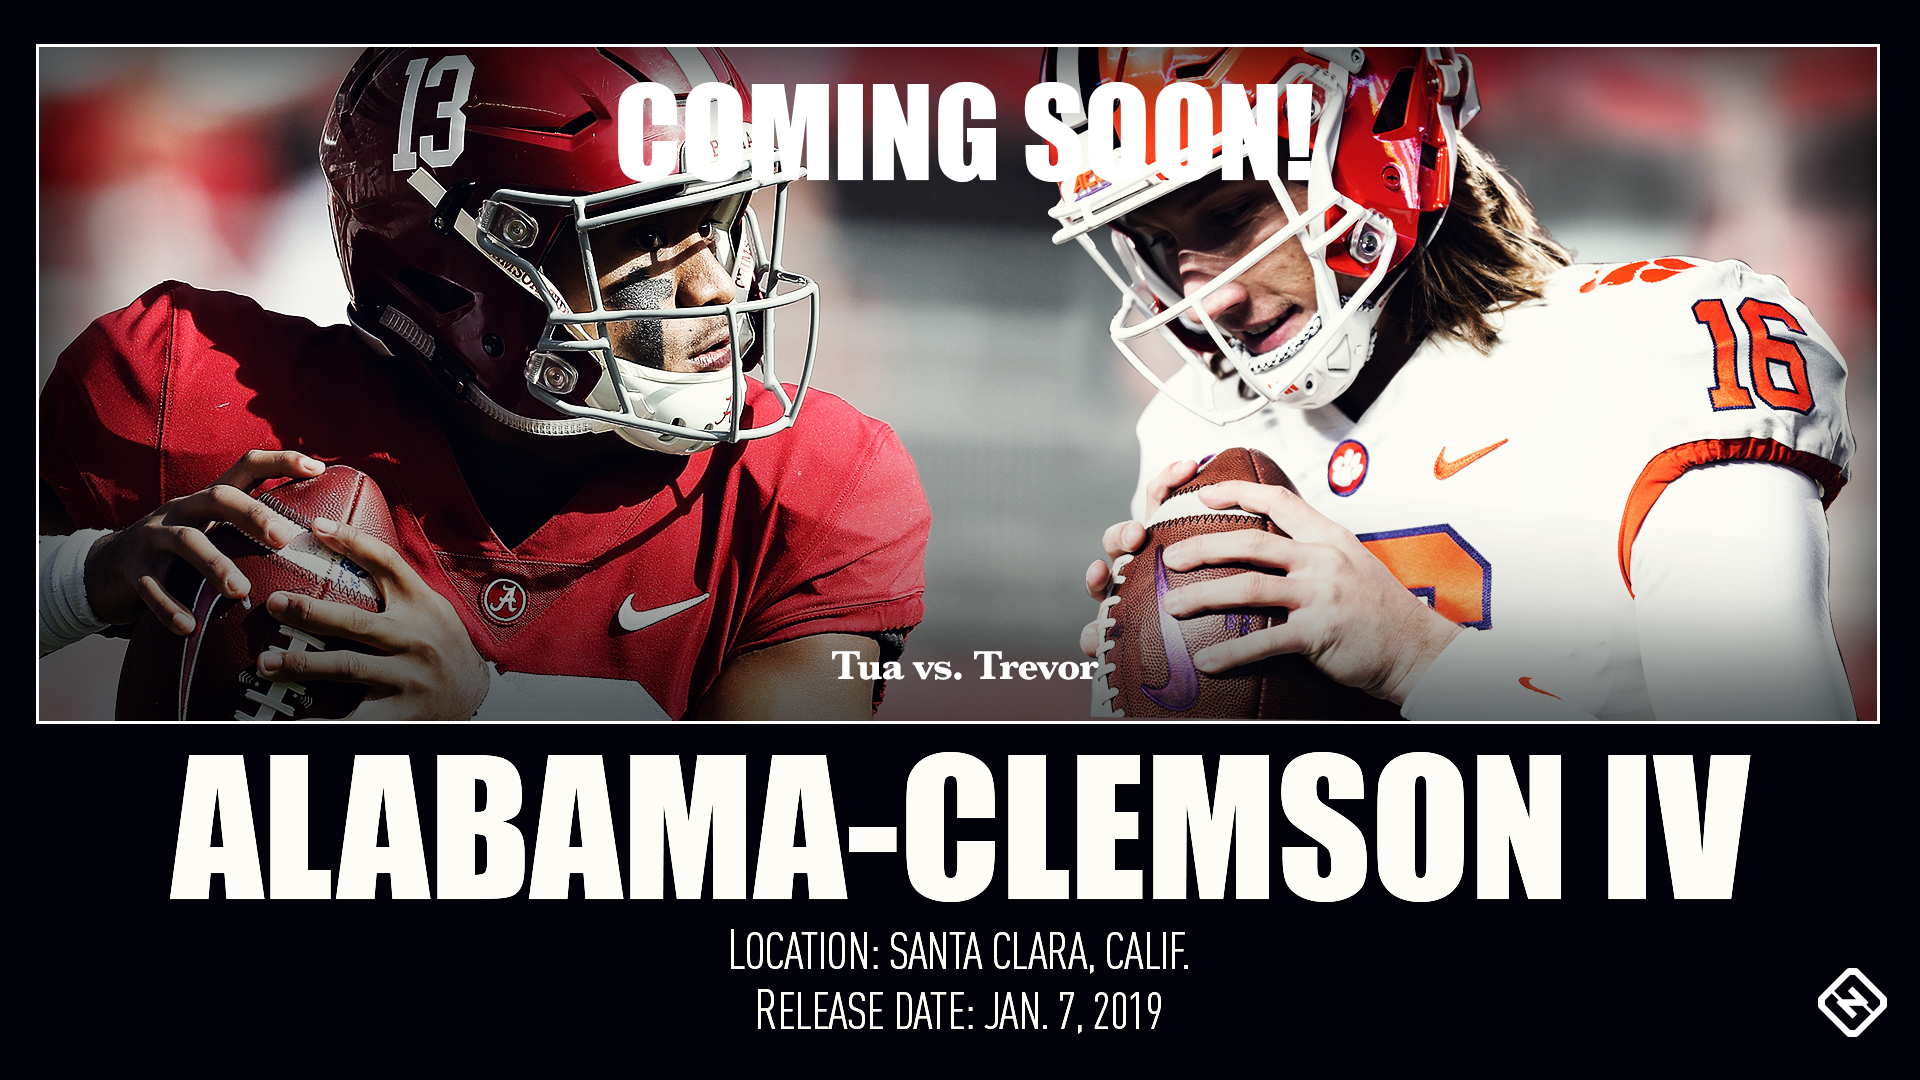 More sequels than 'Rocky': Alabama-Clemson is stuff movies are made of